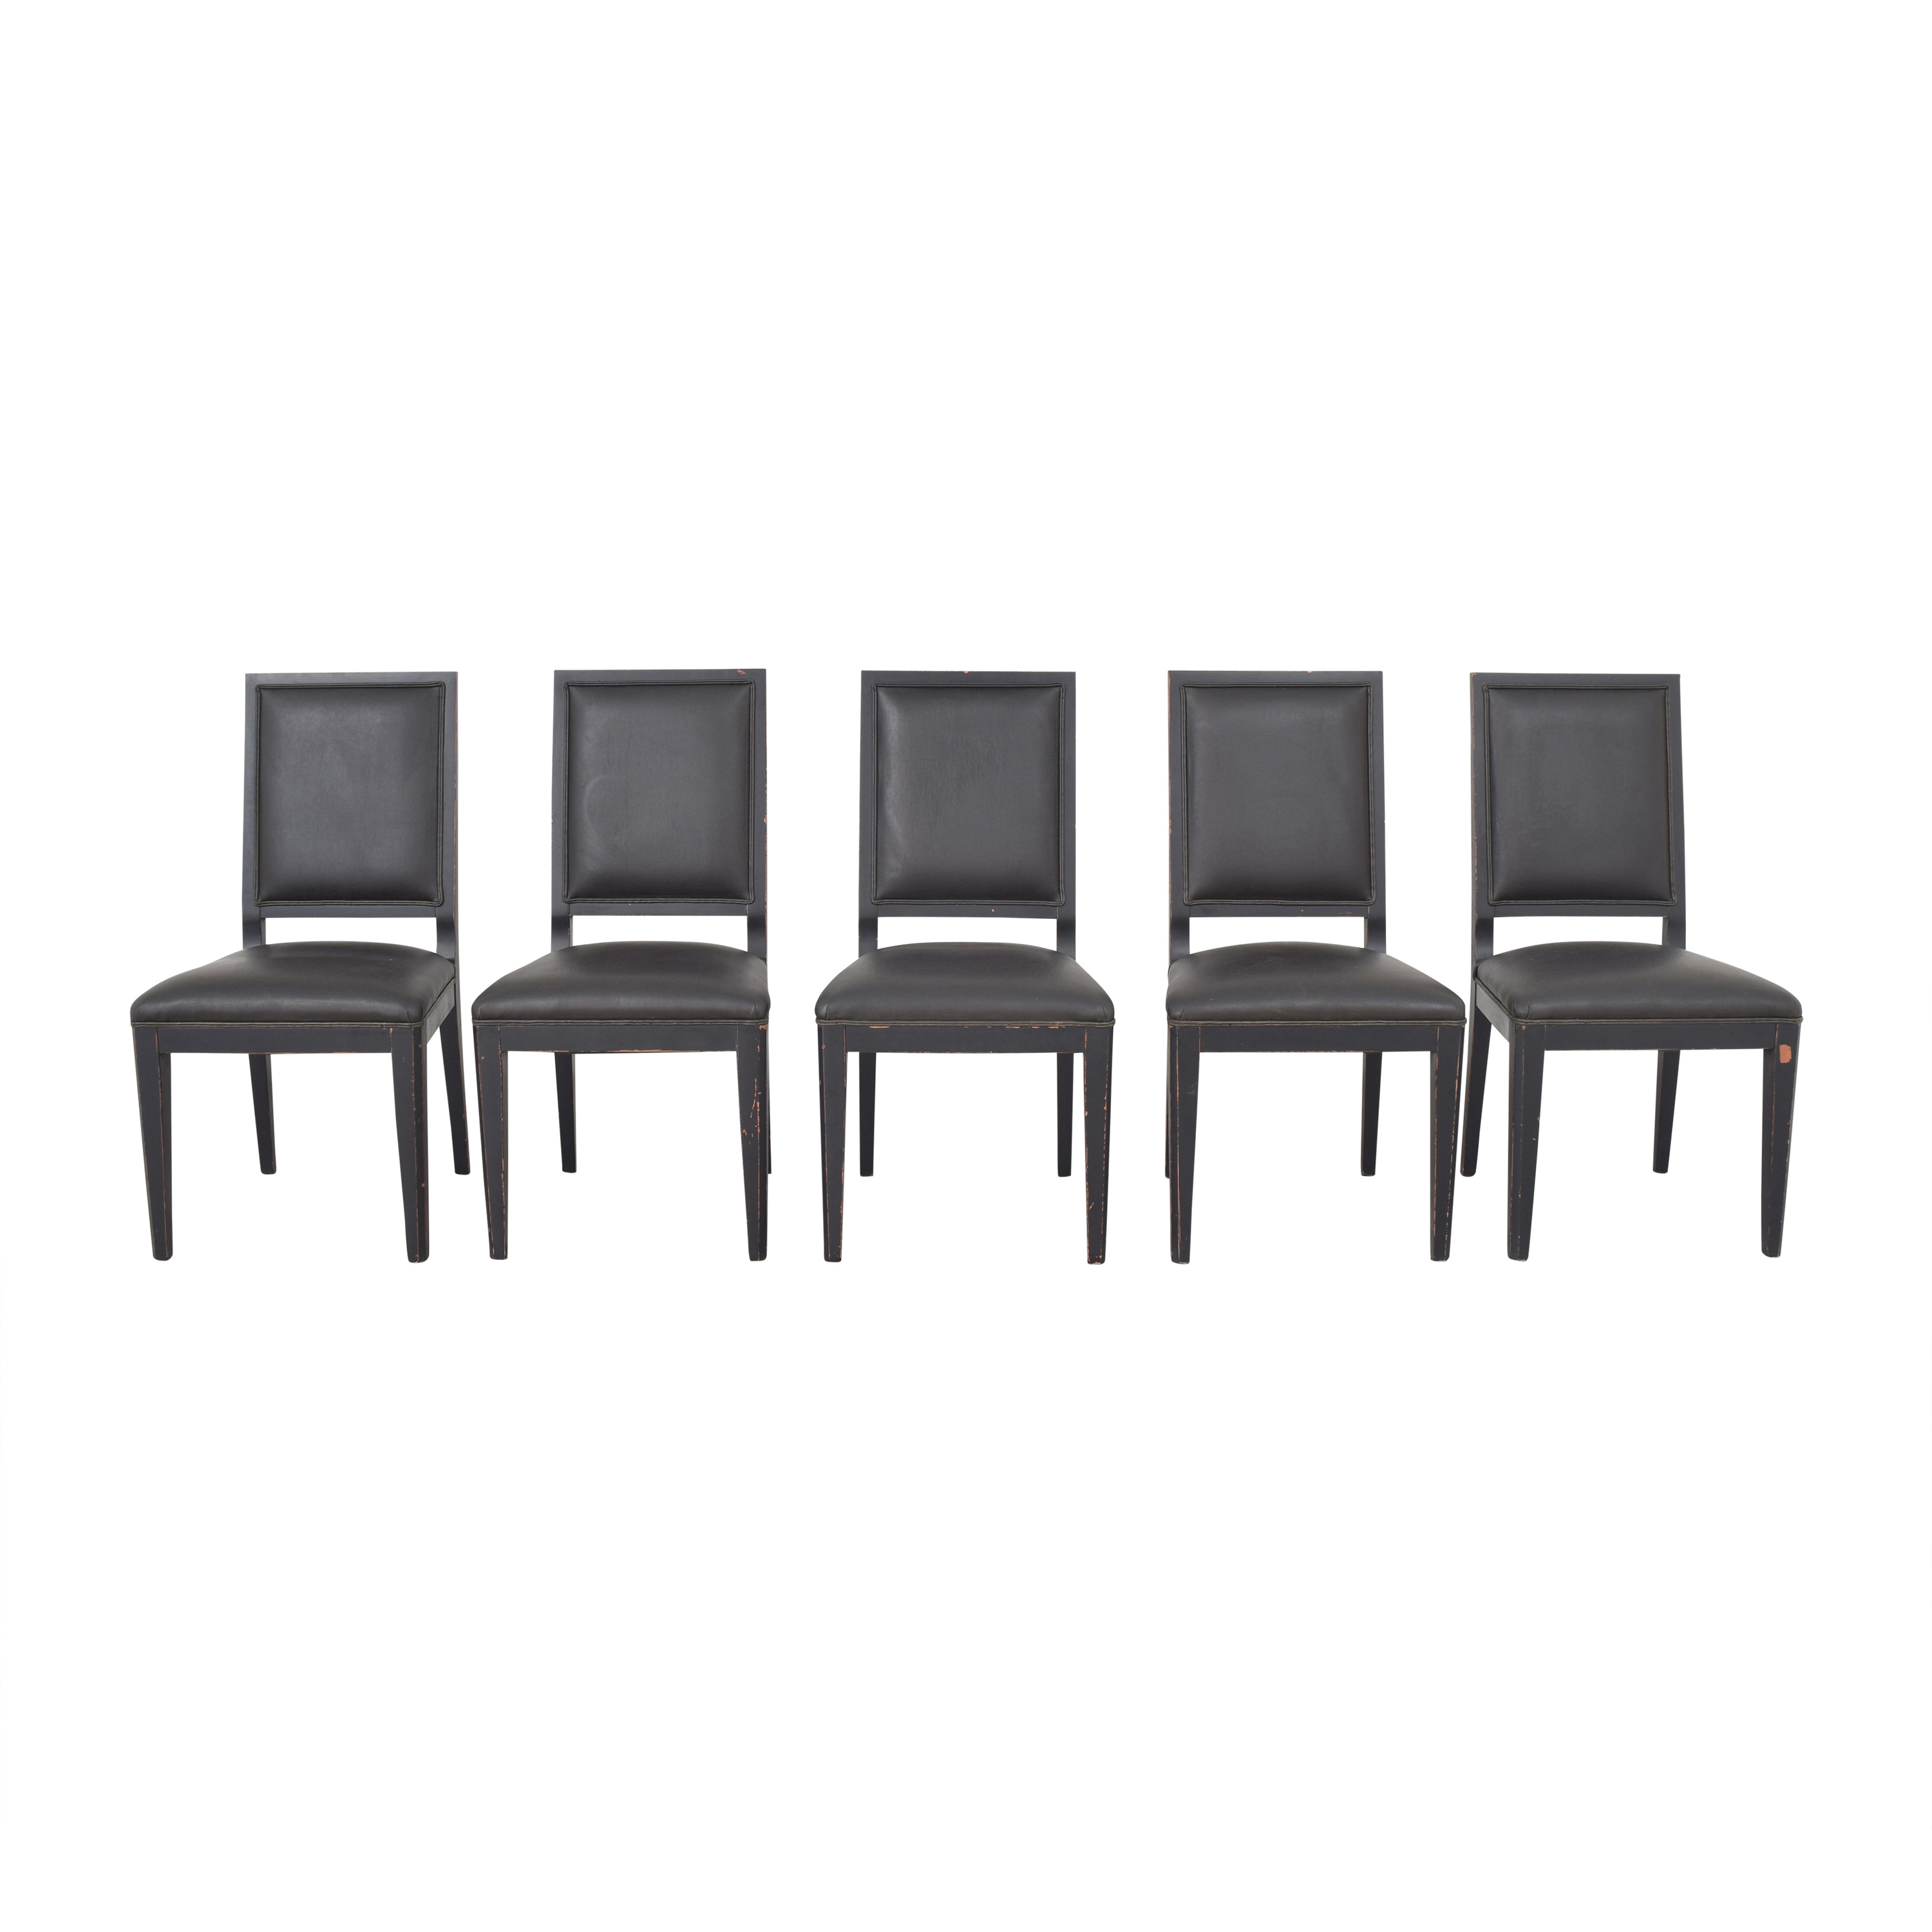 Crate & Barrel High Back Dining Chairs / Dining Chairs